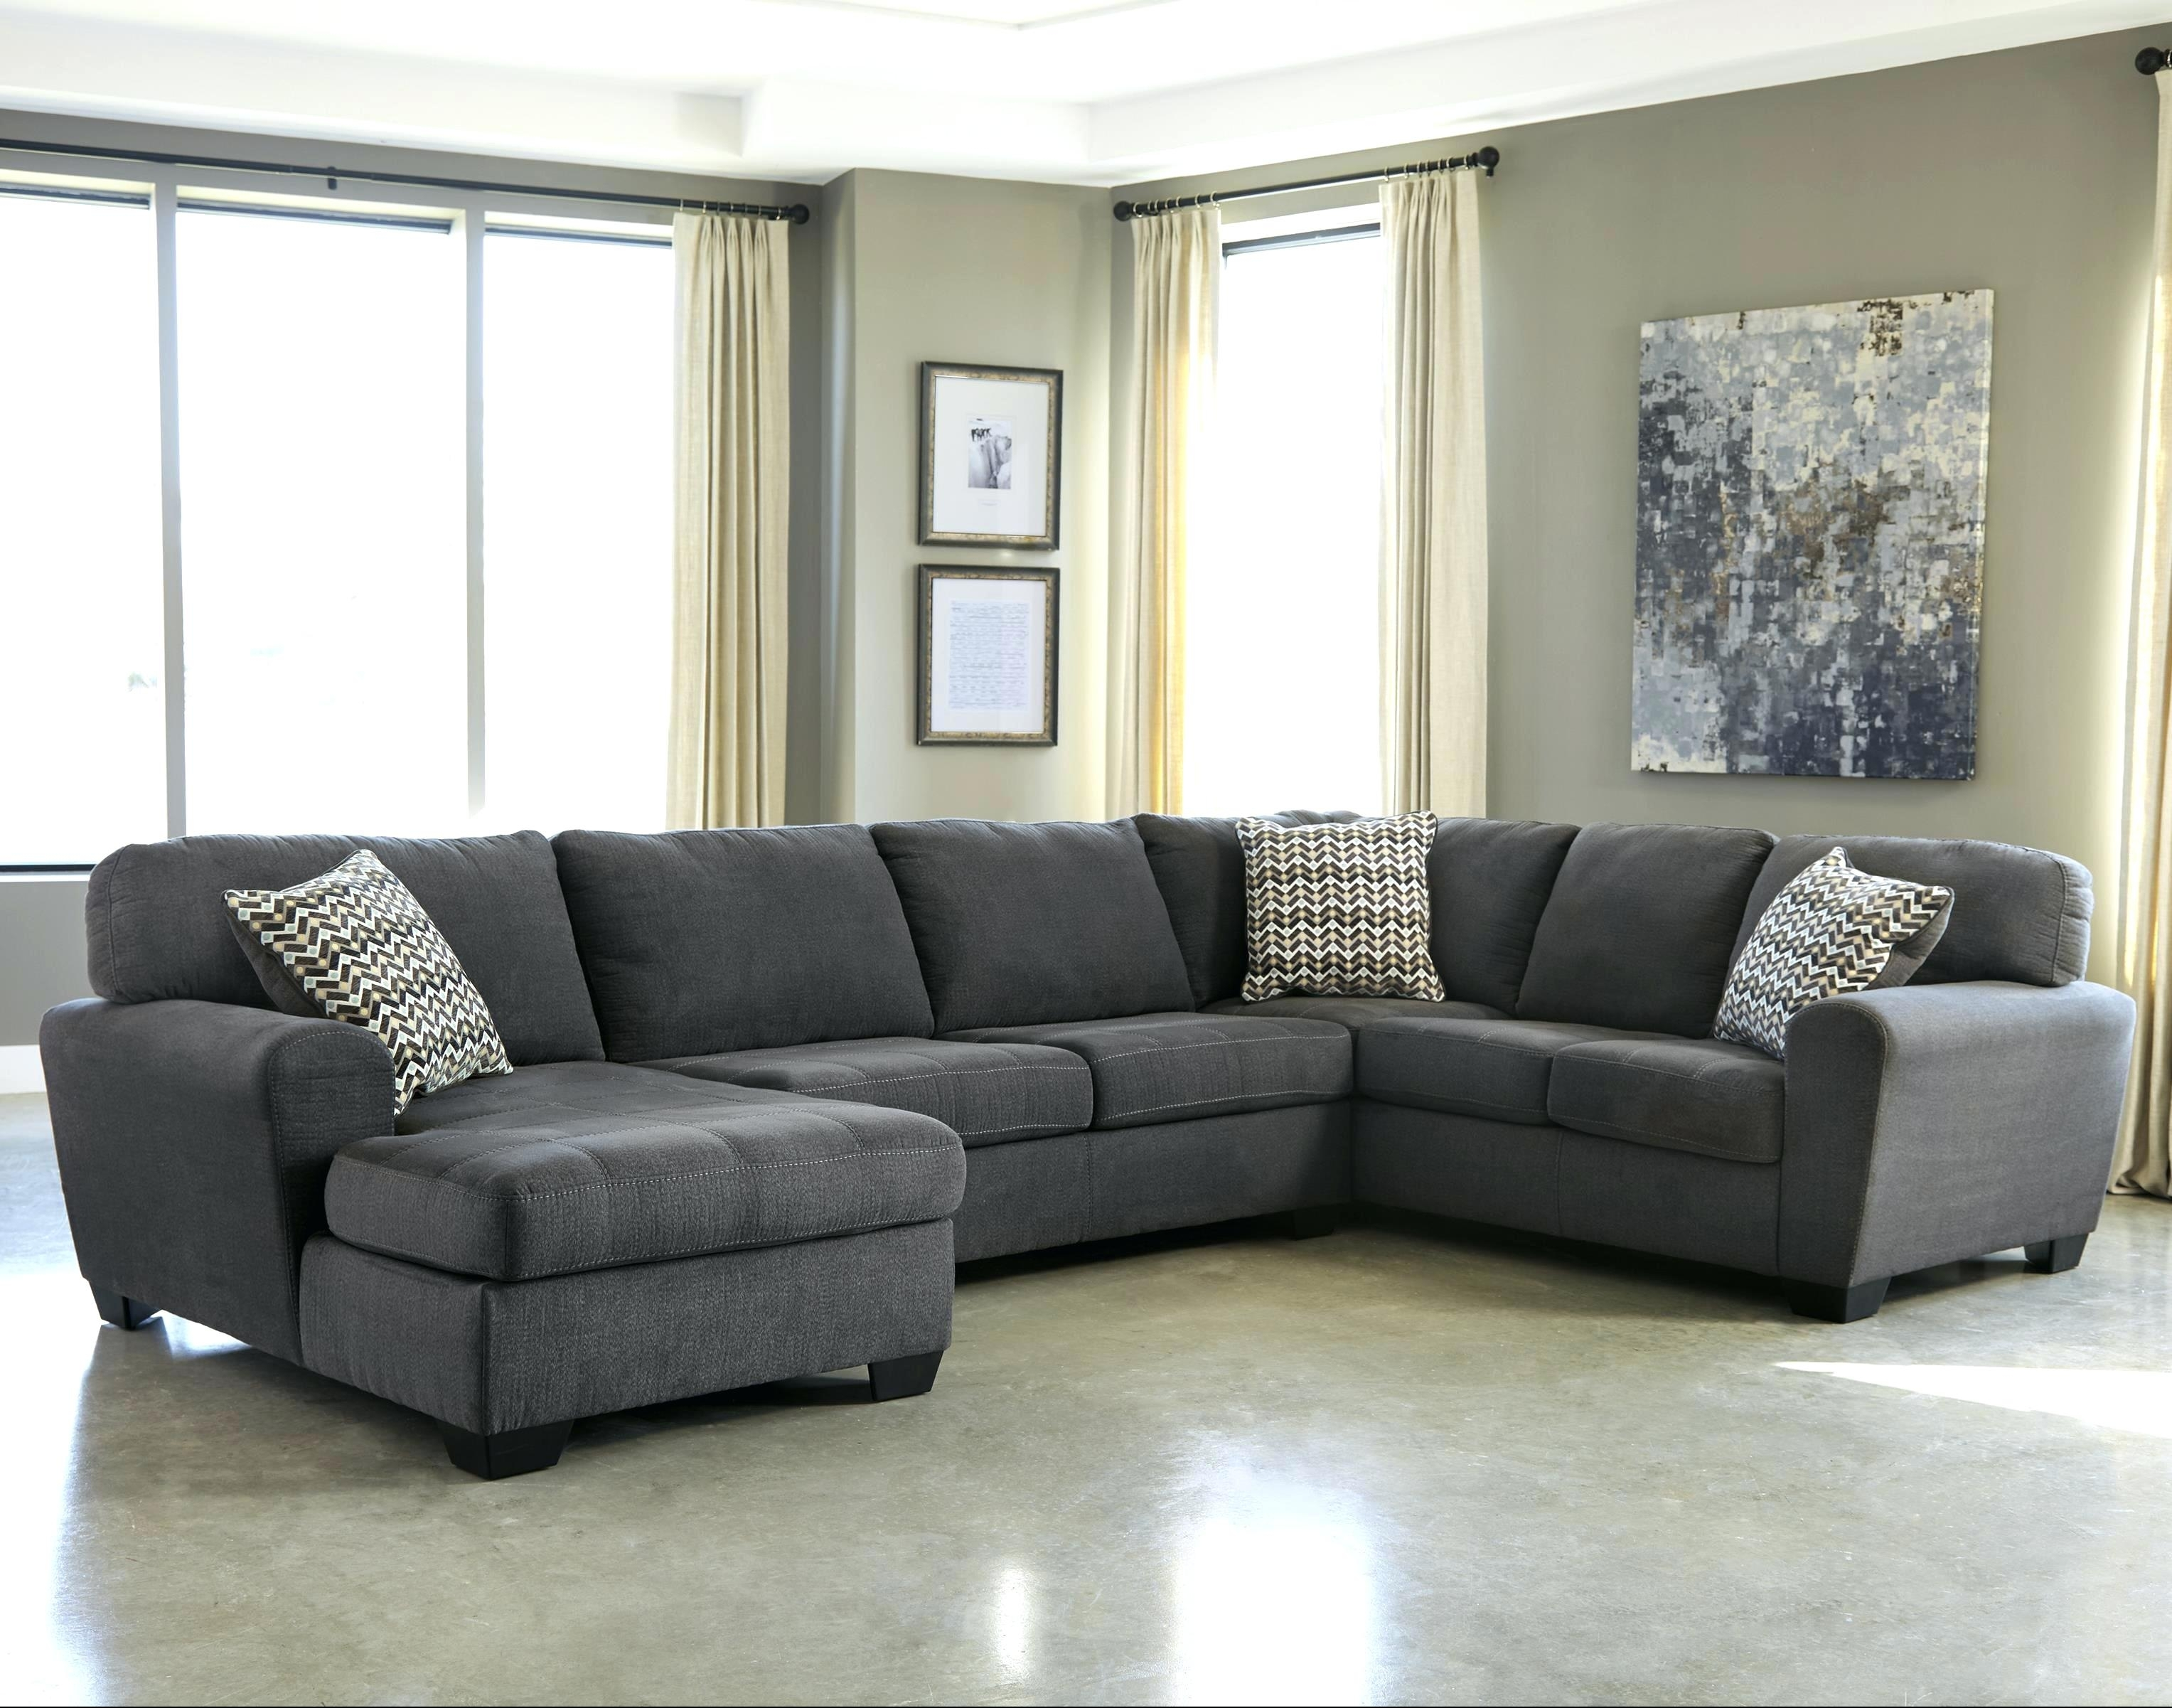 3 Piece Sectional Haven Blue Steel 3 Piece Sectional 3 Pc Reclining inside Haven 3 Piece Sectionals (Image 2 of 32)